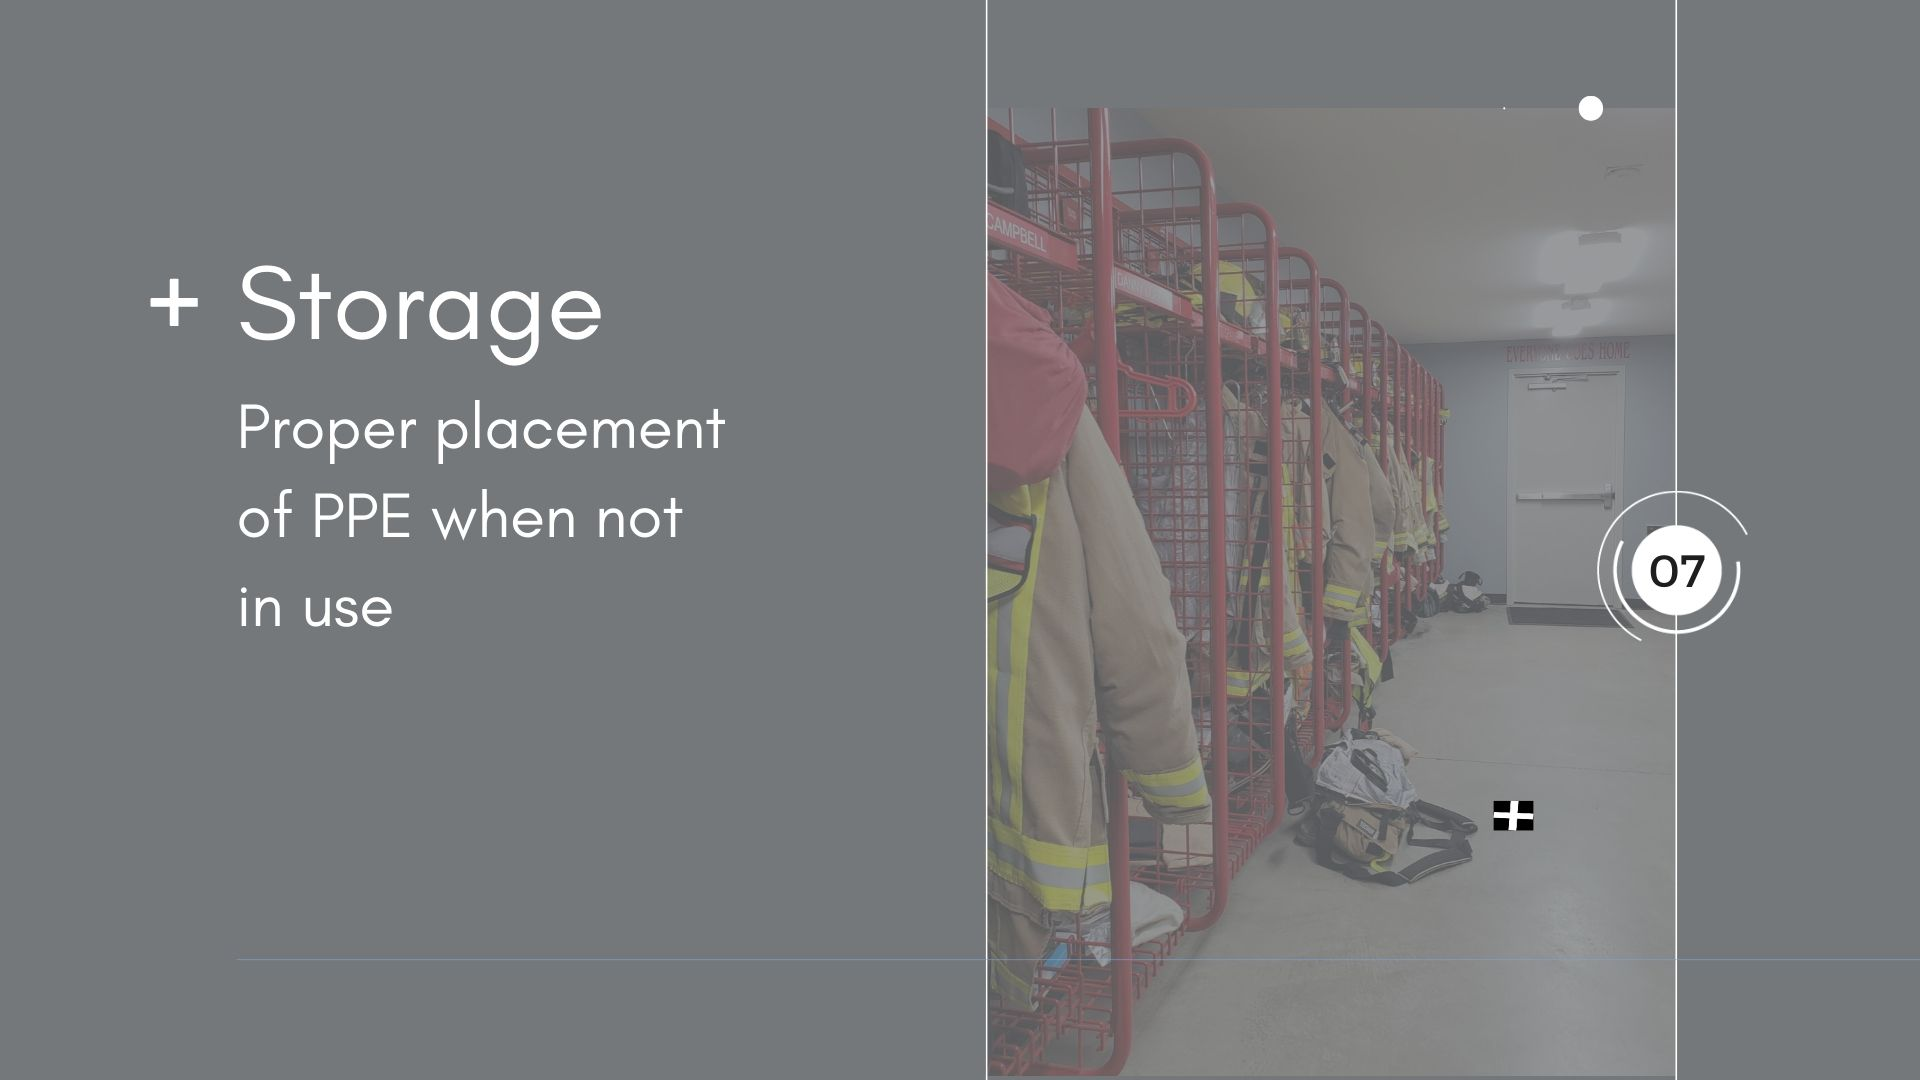 NFPA - Storage Section